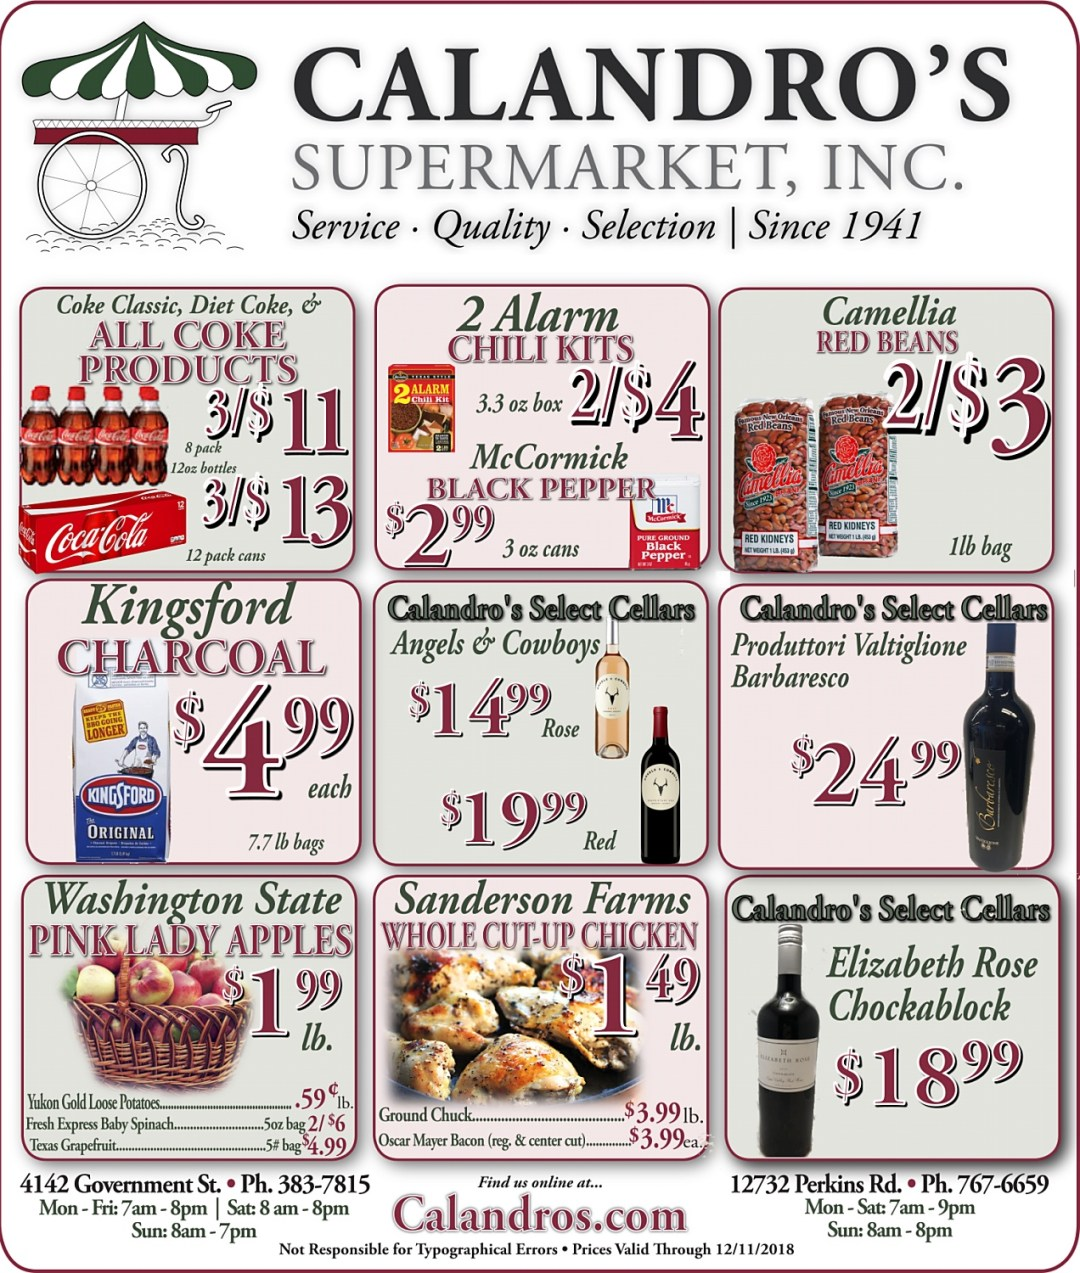 Amazing Weekly Deals @ Calandro's this week (11/29/2018)